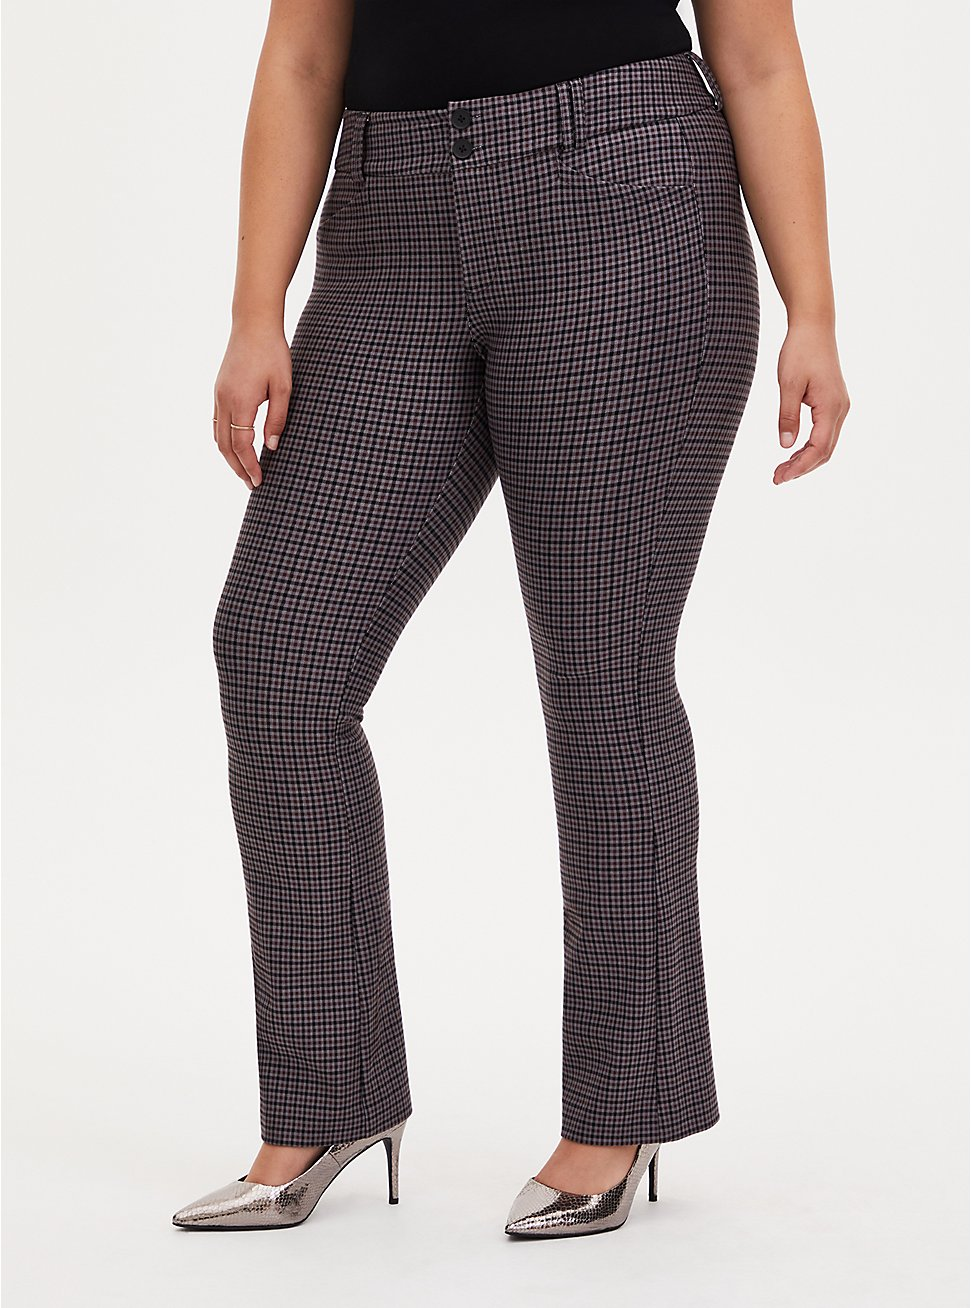 Studio Signature Stretch Grey Plaid Premium Ponte Menswear Trouser, PLAID - MULTI, hi-res